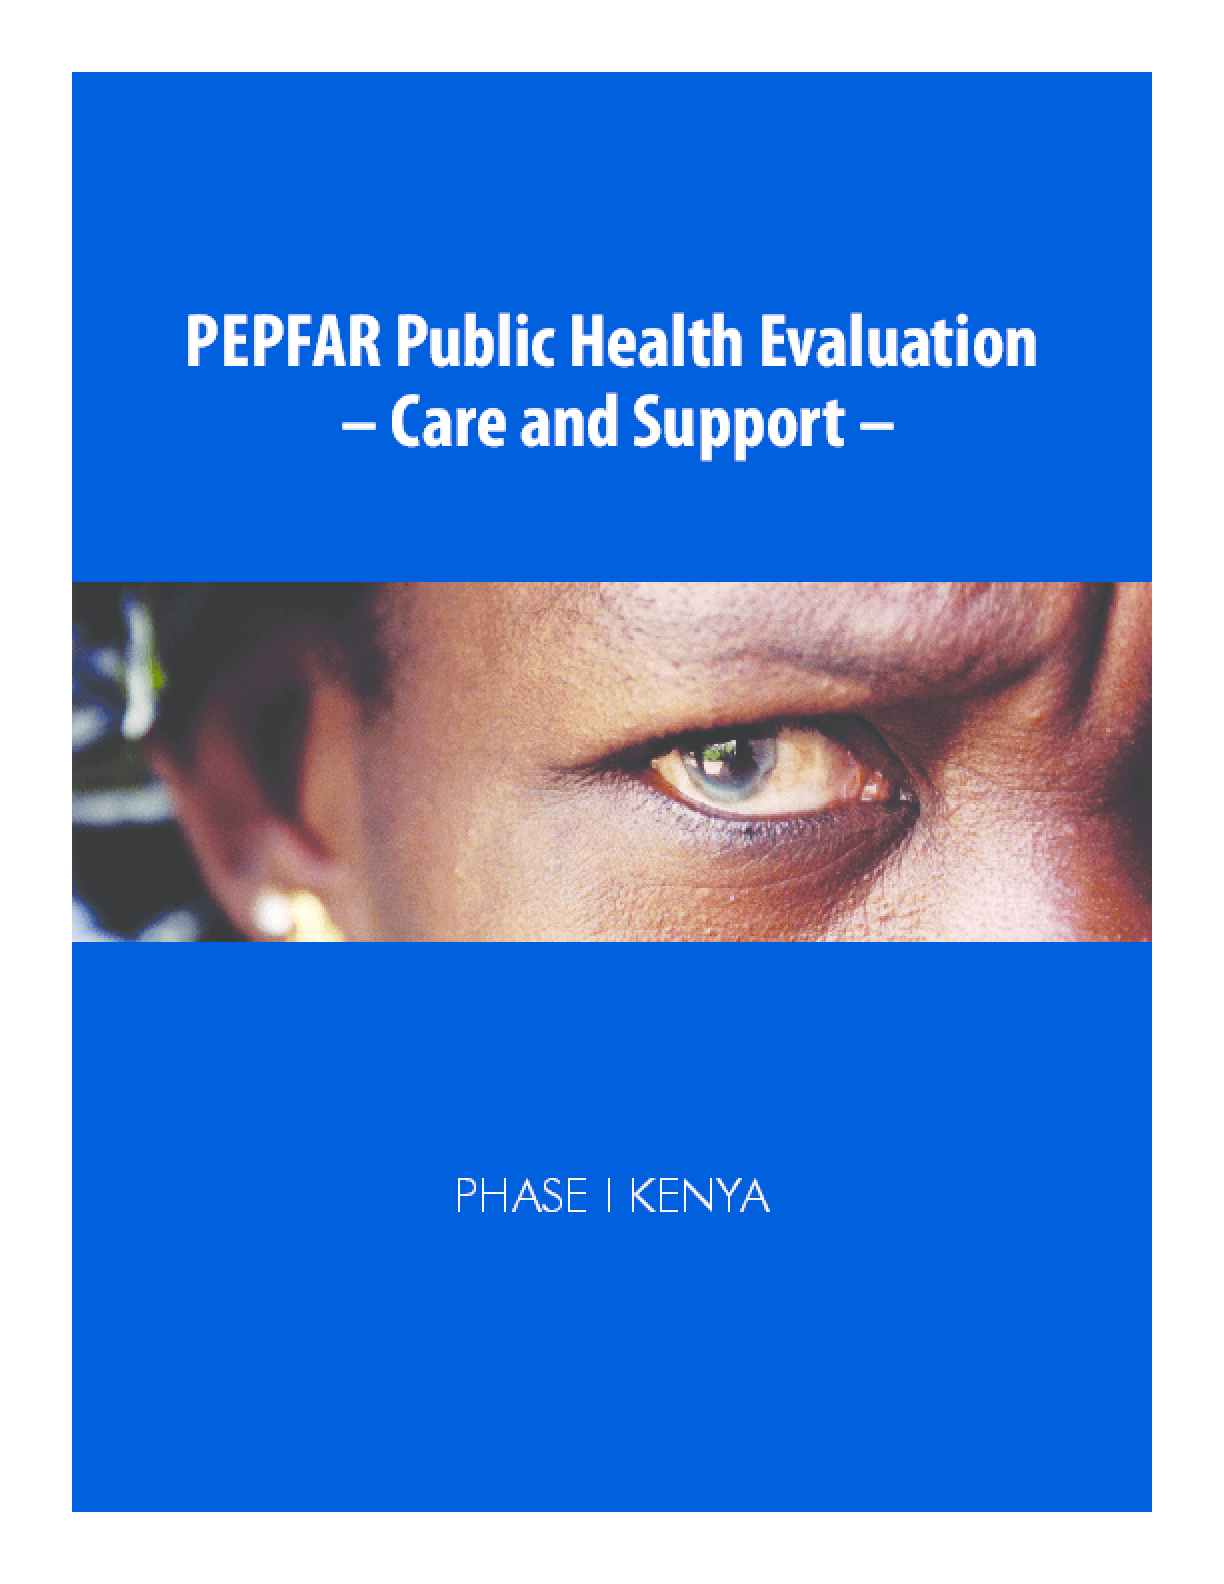 PEPFAR Public Health Evaluation-Care and Support -Phase I Kenya